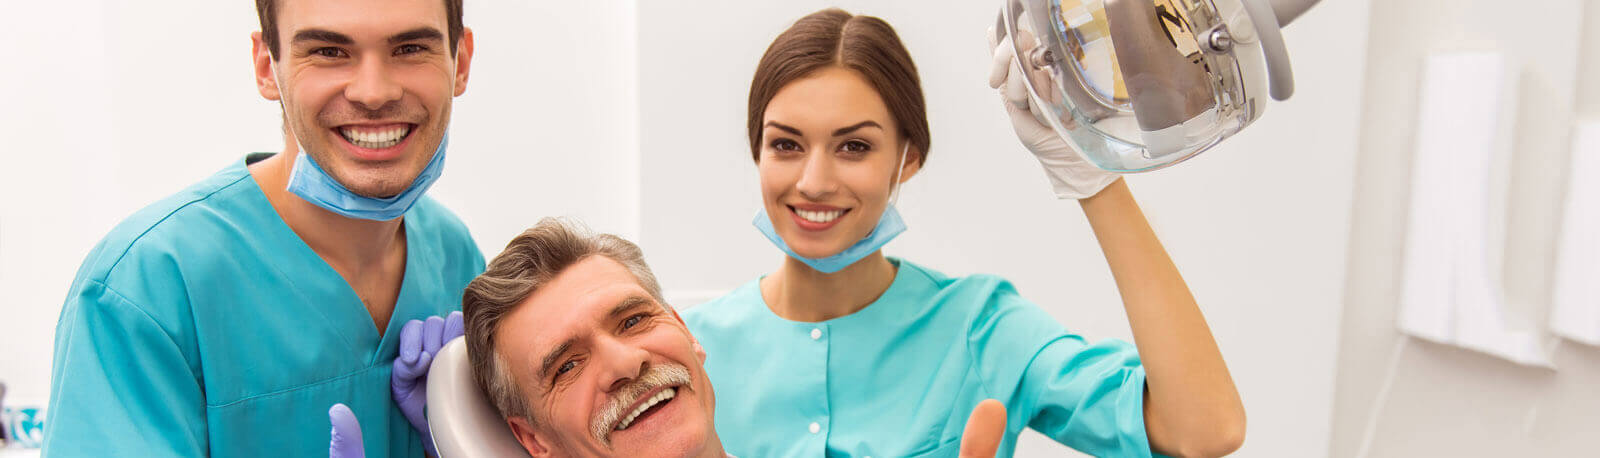 Young doctor dentist and his assistant, elderly patient smiling and looking at the camera